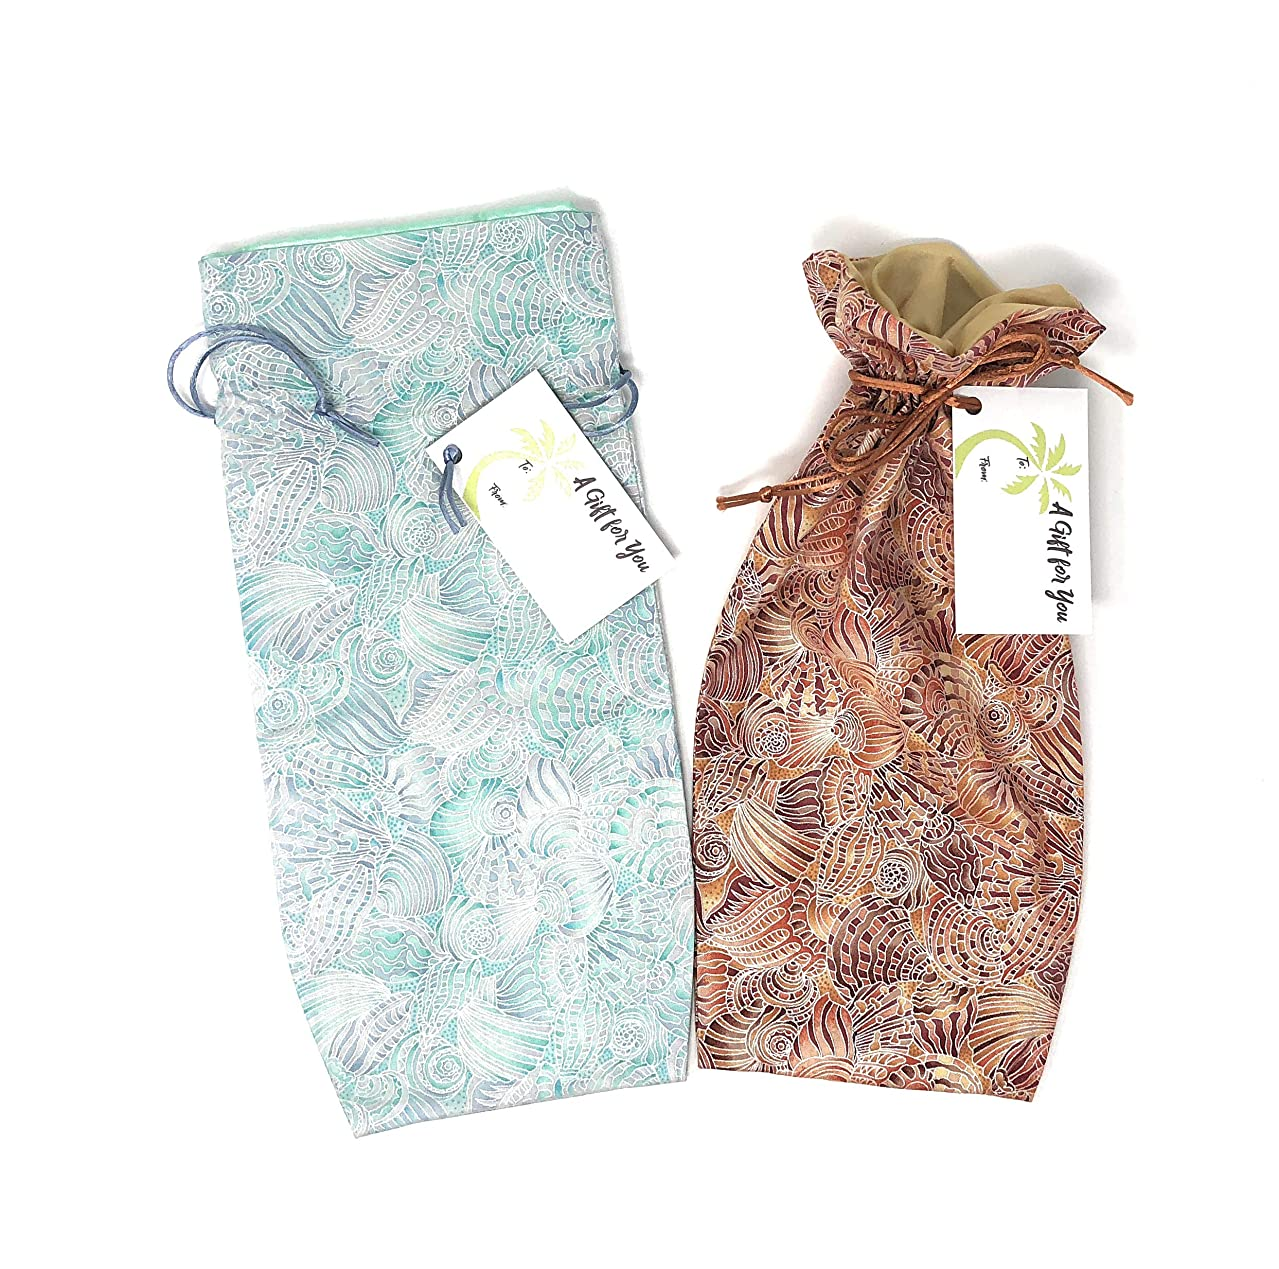 "Shell Fabric Reusable Drawstring Gift Bag | Eco-friendly alternative to paper giftwrap for wine bottle | Weddings & Showers | Cotton Cloth, fully-lined poly Sand/Aqua, 13.25""x6"